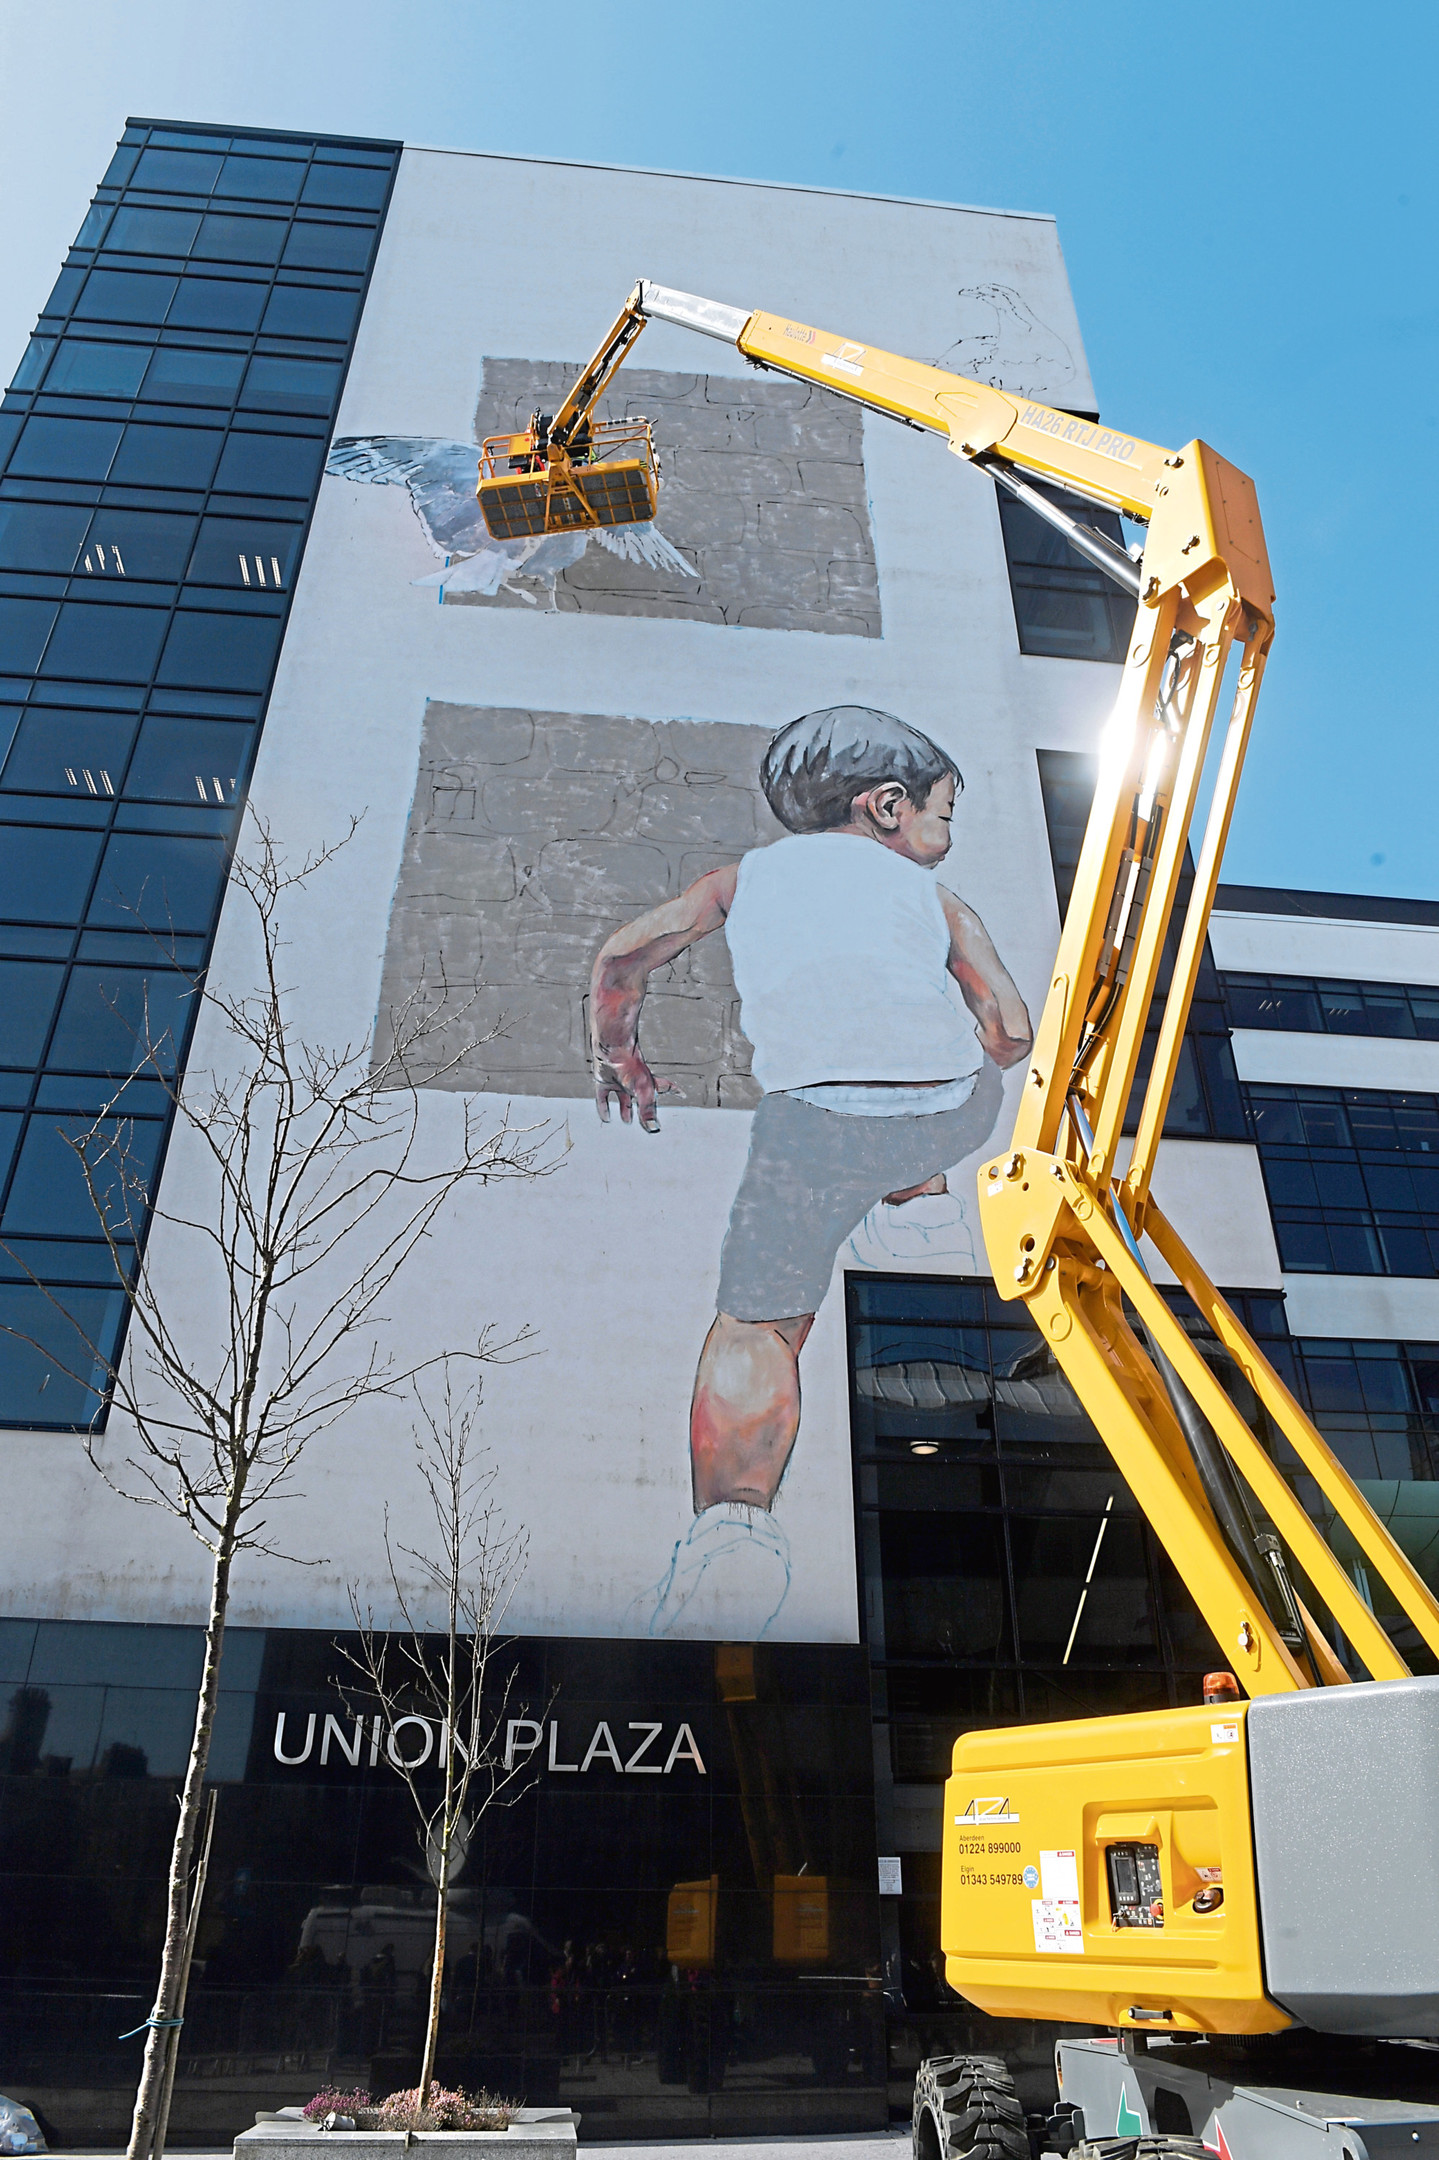 Nuart Aberdeen. Ernest Zacharevic working on his piece on Union Plaza. 12/04/18. Picture by KATH FLANNERY